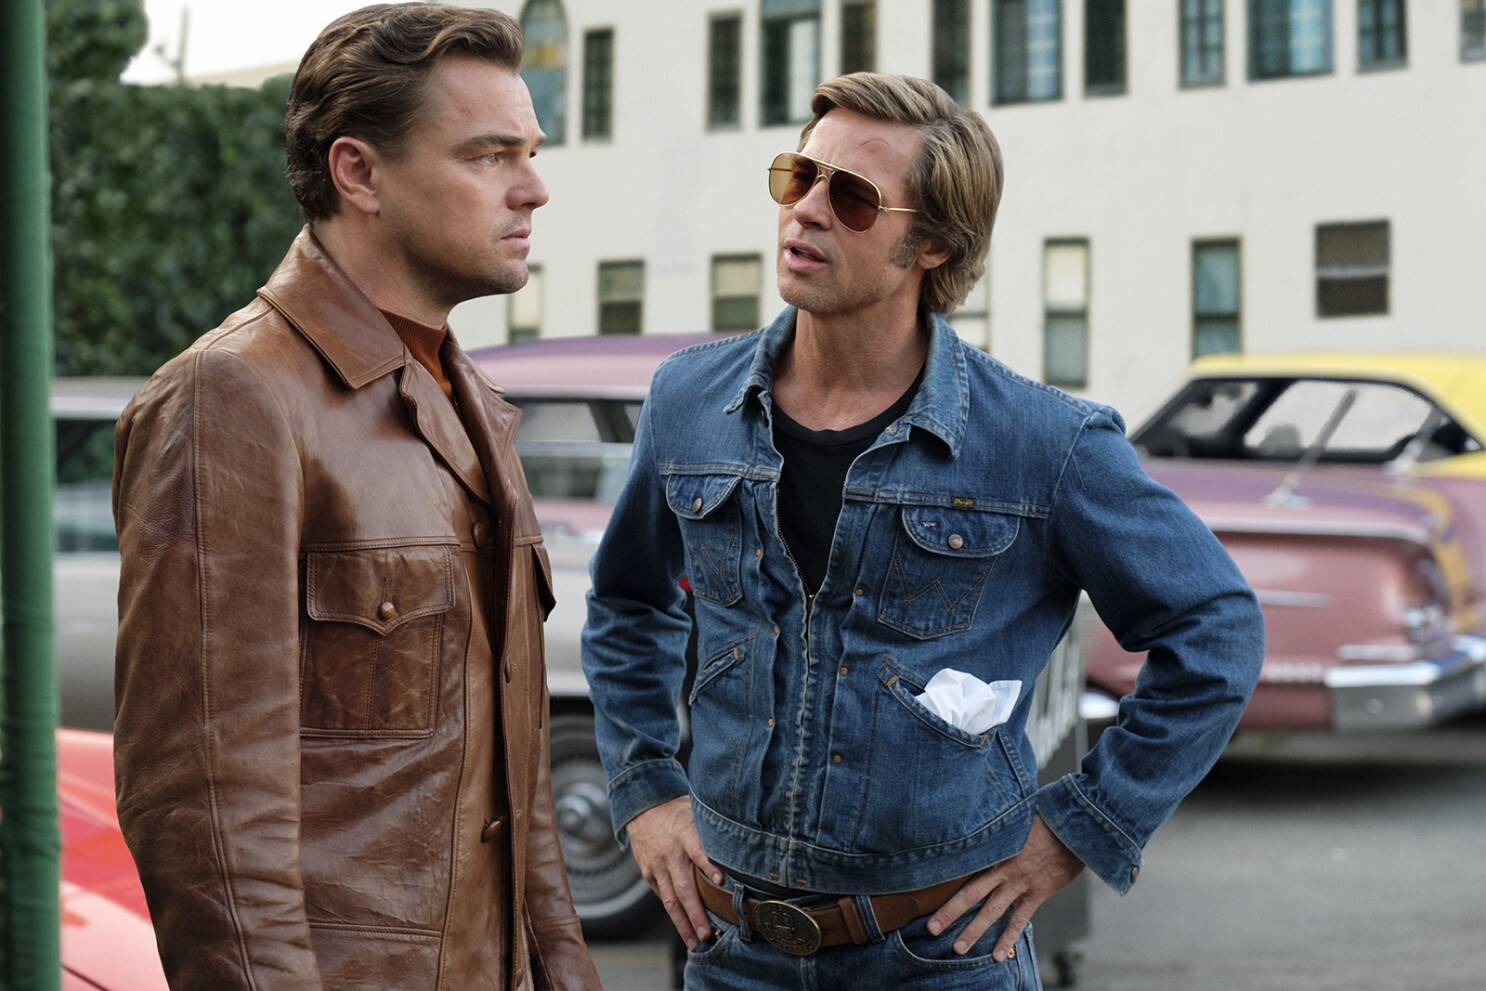 L.A. movie openings, July 21-28: 'Once Upon a Time in Hollywood' and more